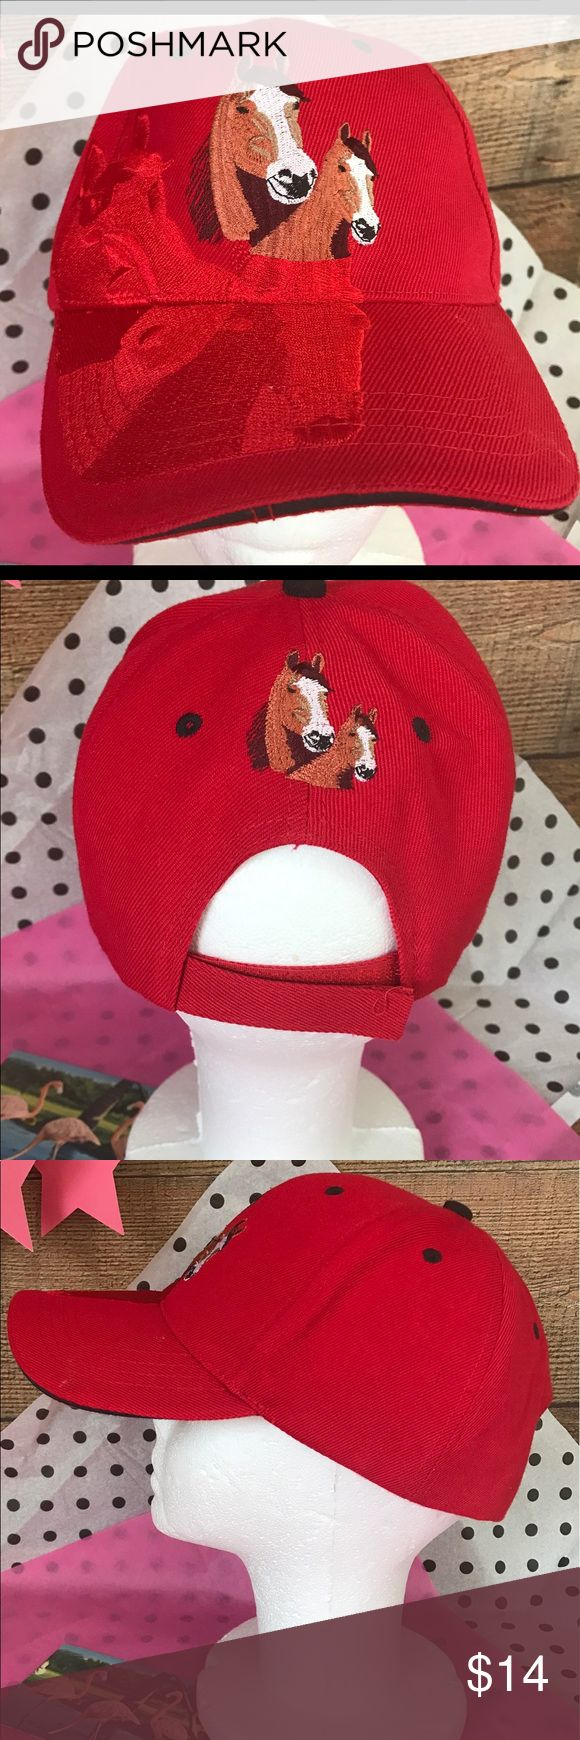 Red Embroidered Horses Riding Hat Excellent Condition unbranded Accessories Hats